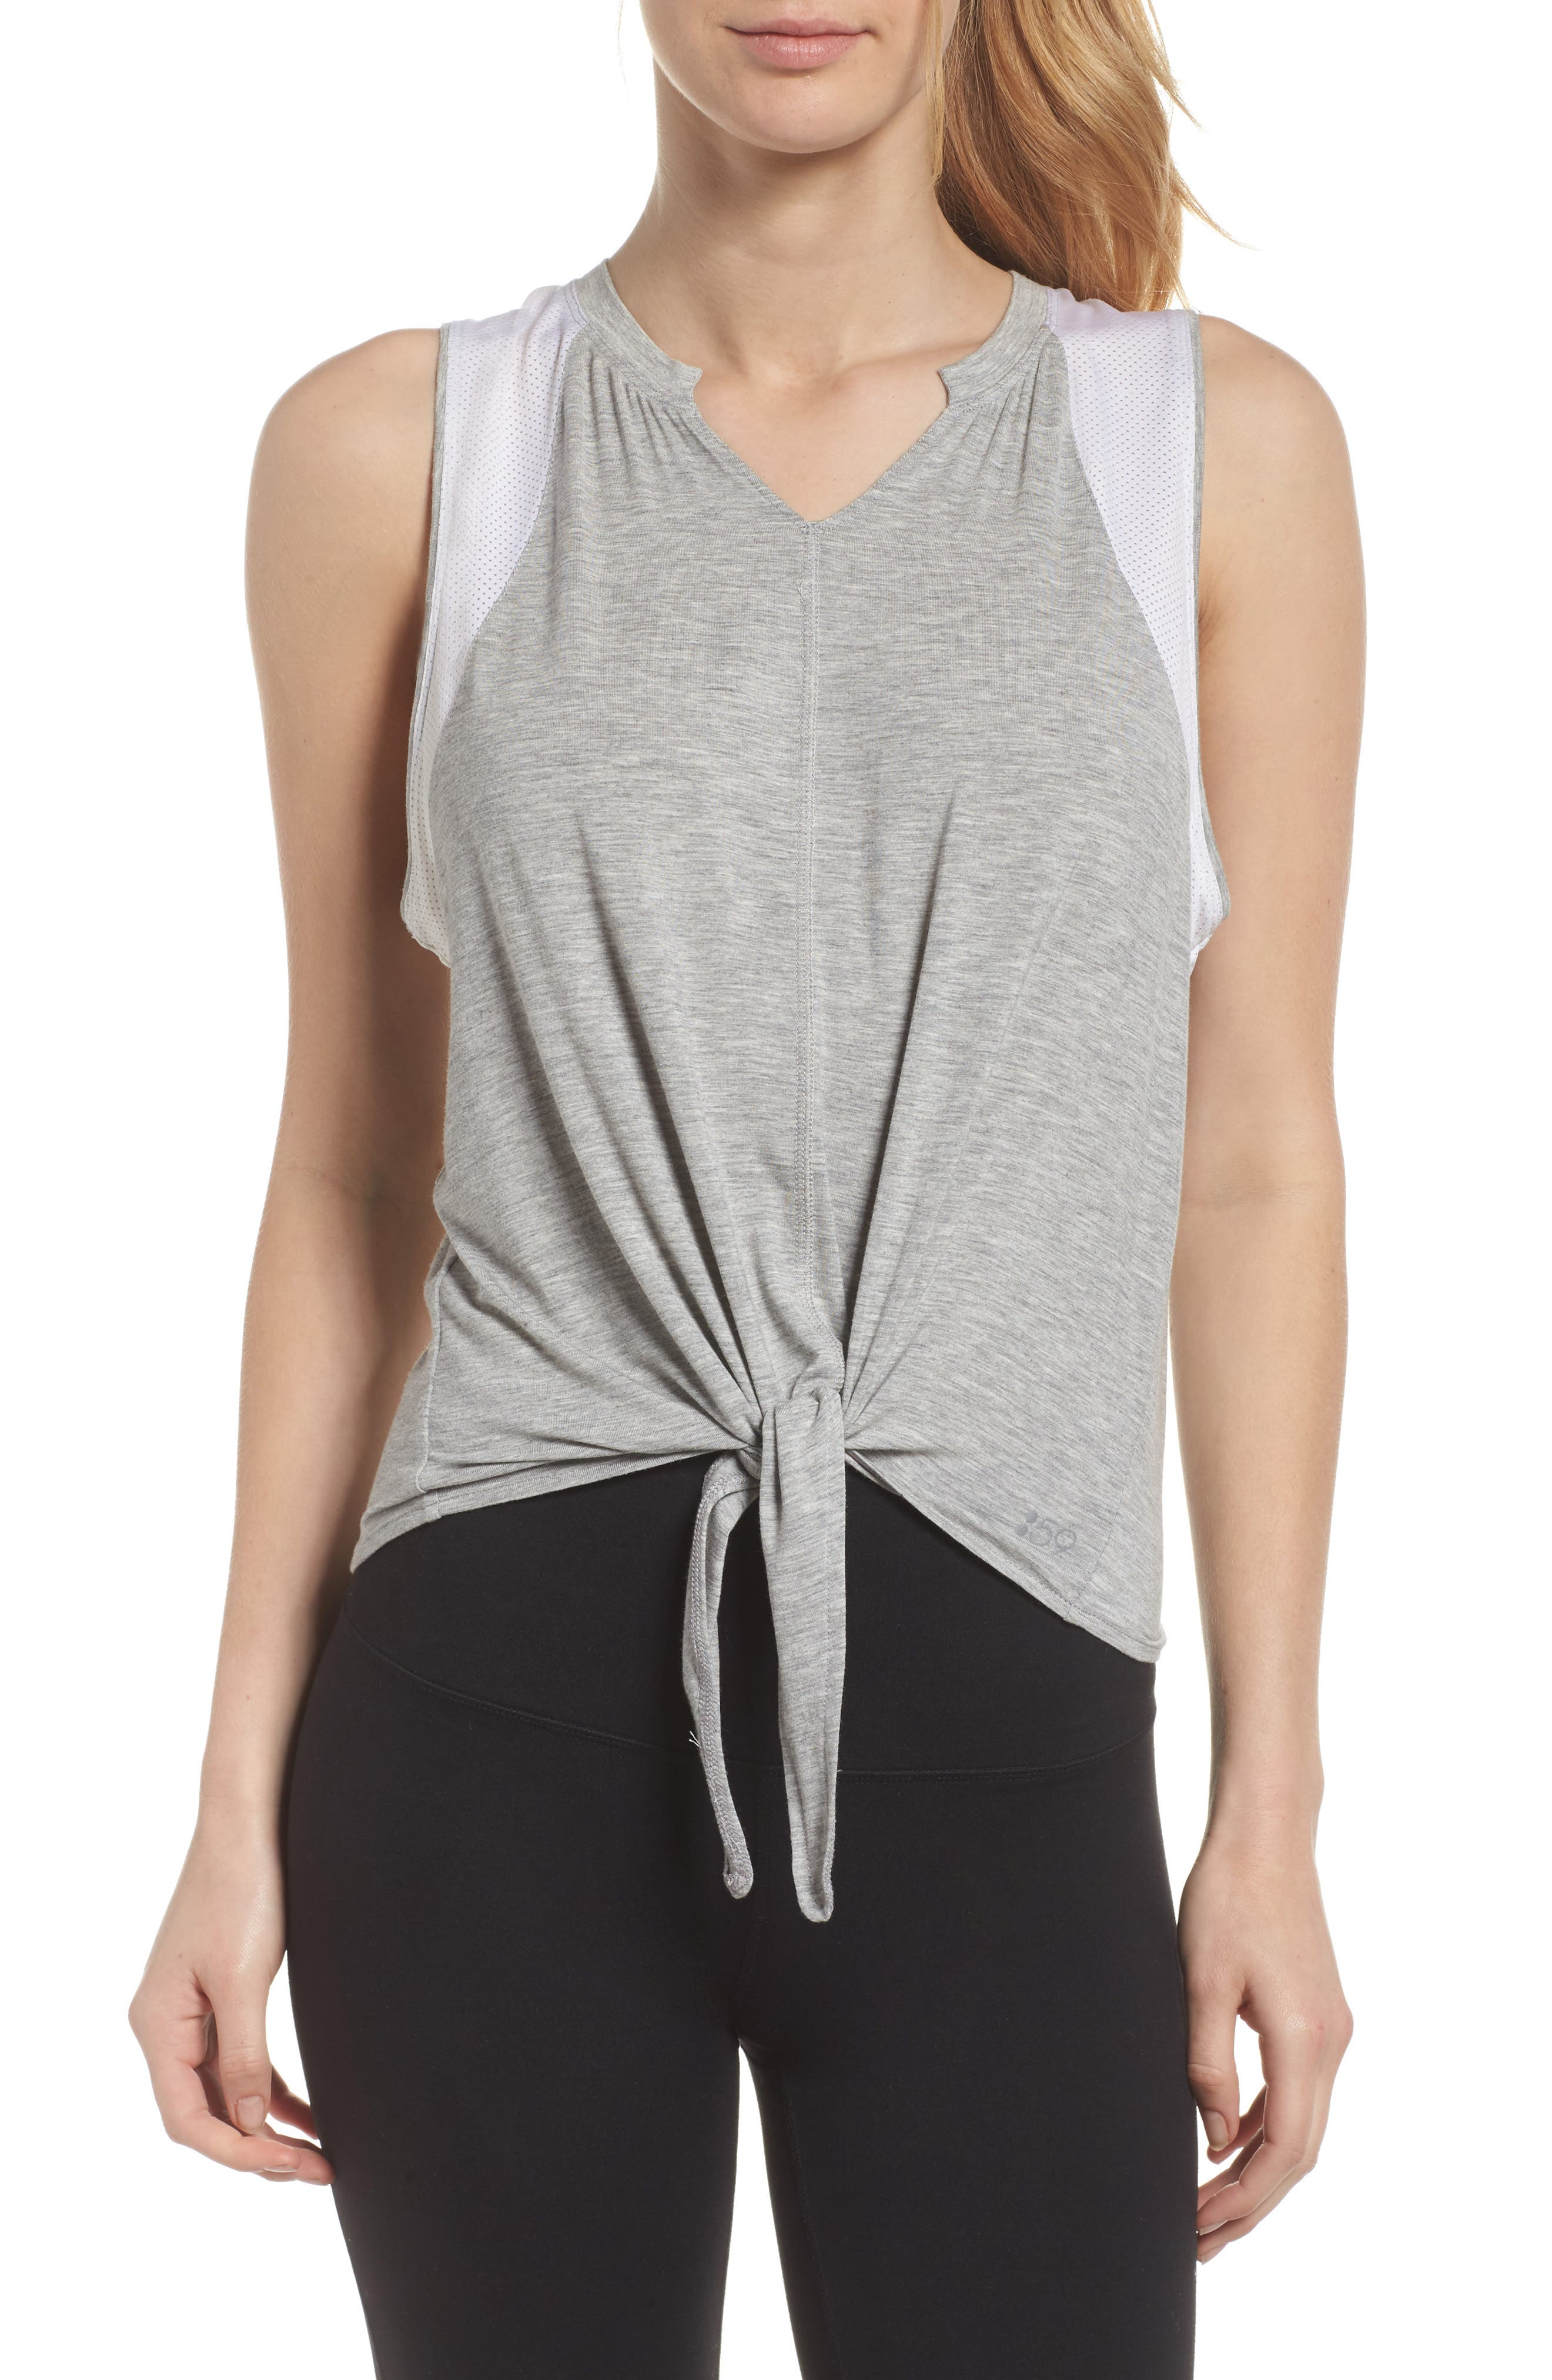 Bandit Tank,                         Main,                         color, Heather Grey/ Off White